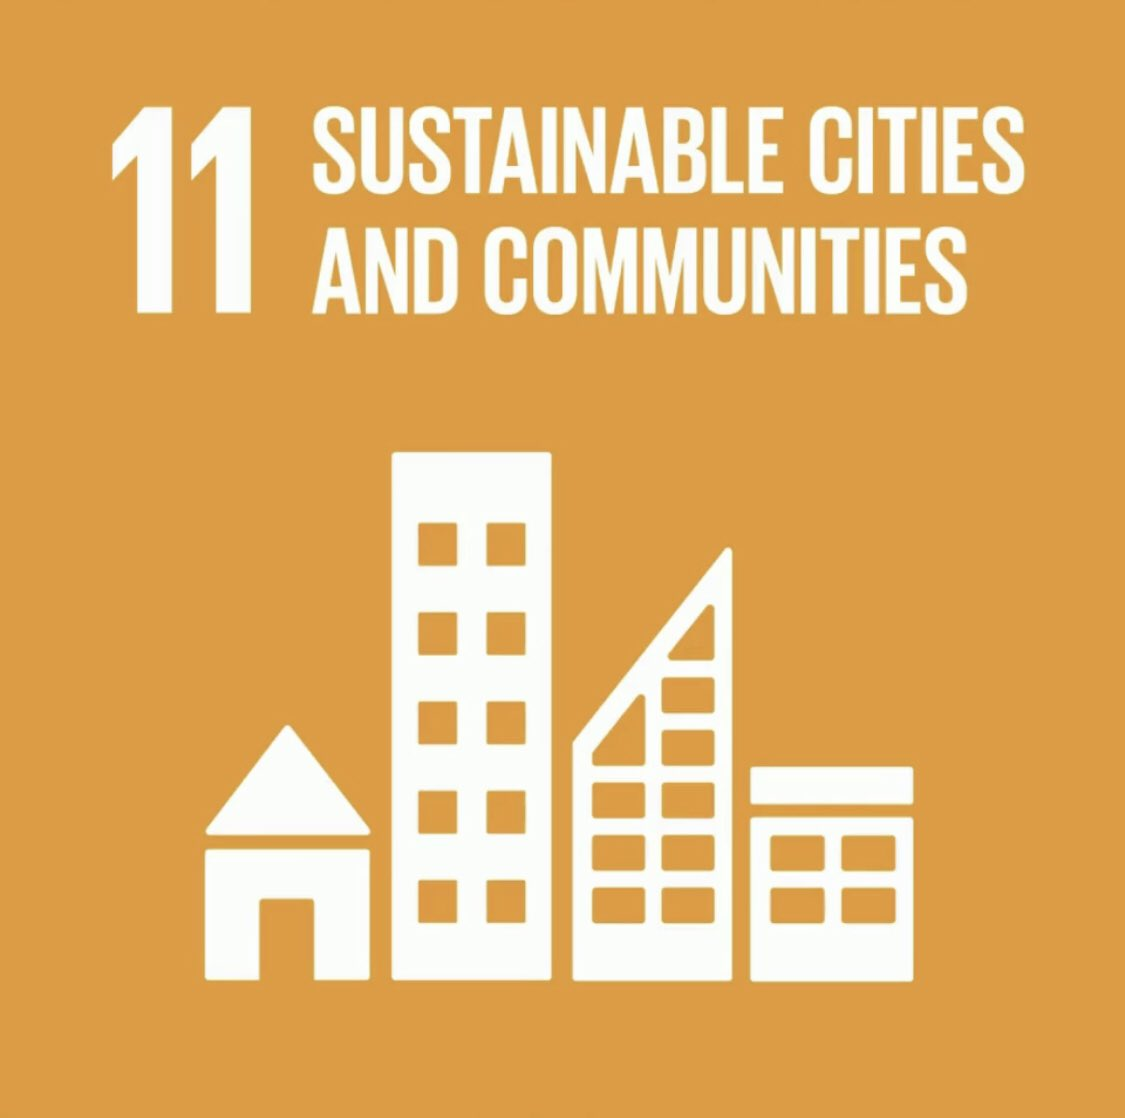 Making cities sustainable means creating career and business opportunities, safe and affordable housing, and building resilient societies and economies. Sustainable cities and communities are necessary to economic growth.  #SDG11 #UN75 #GlobalGoals #Agenda2030  #bkdfoundation